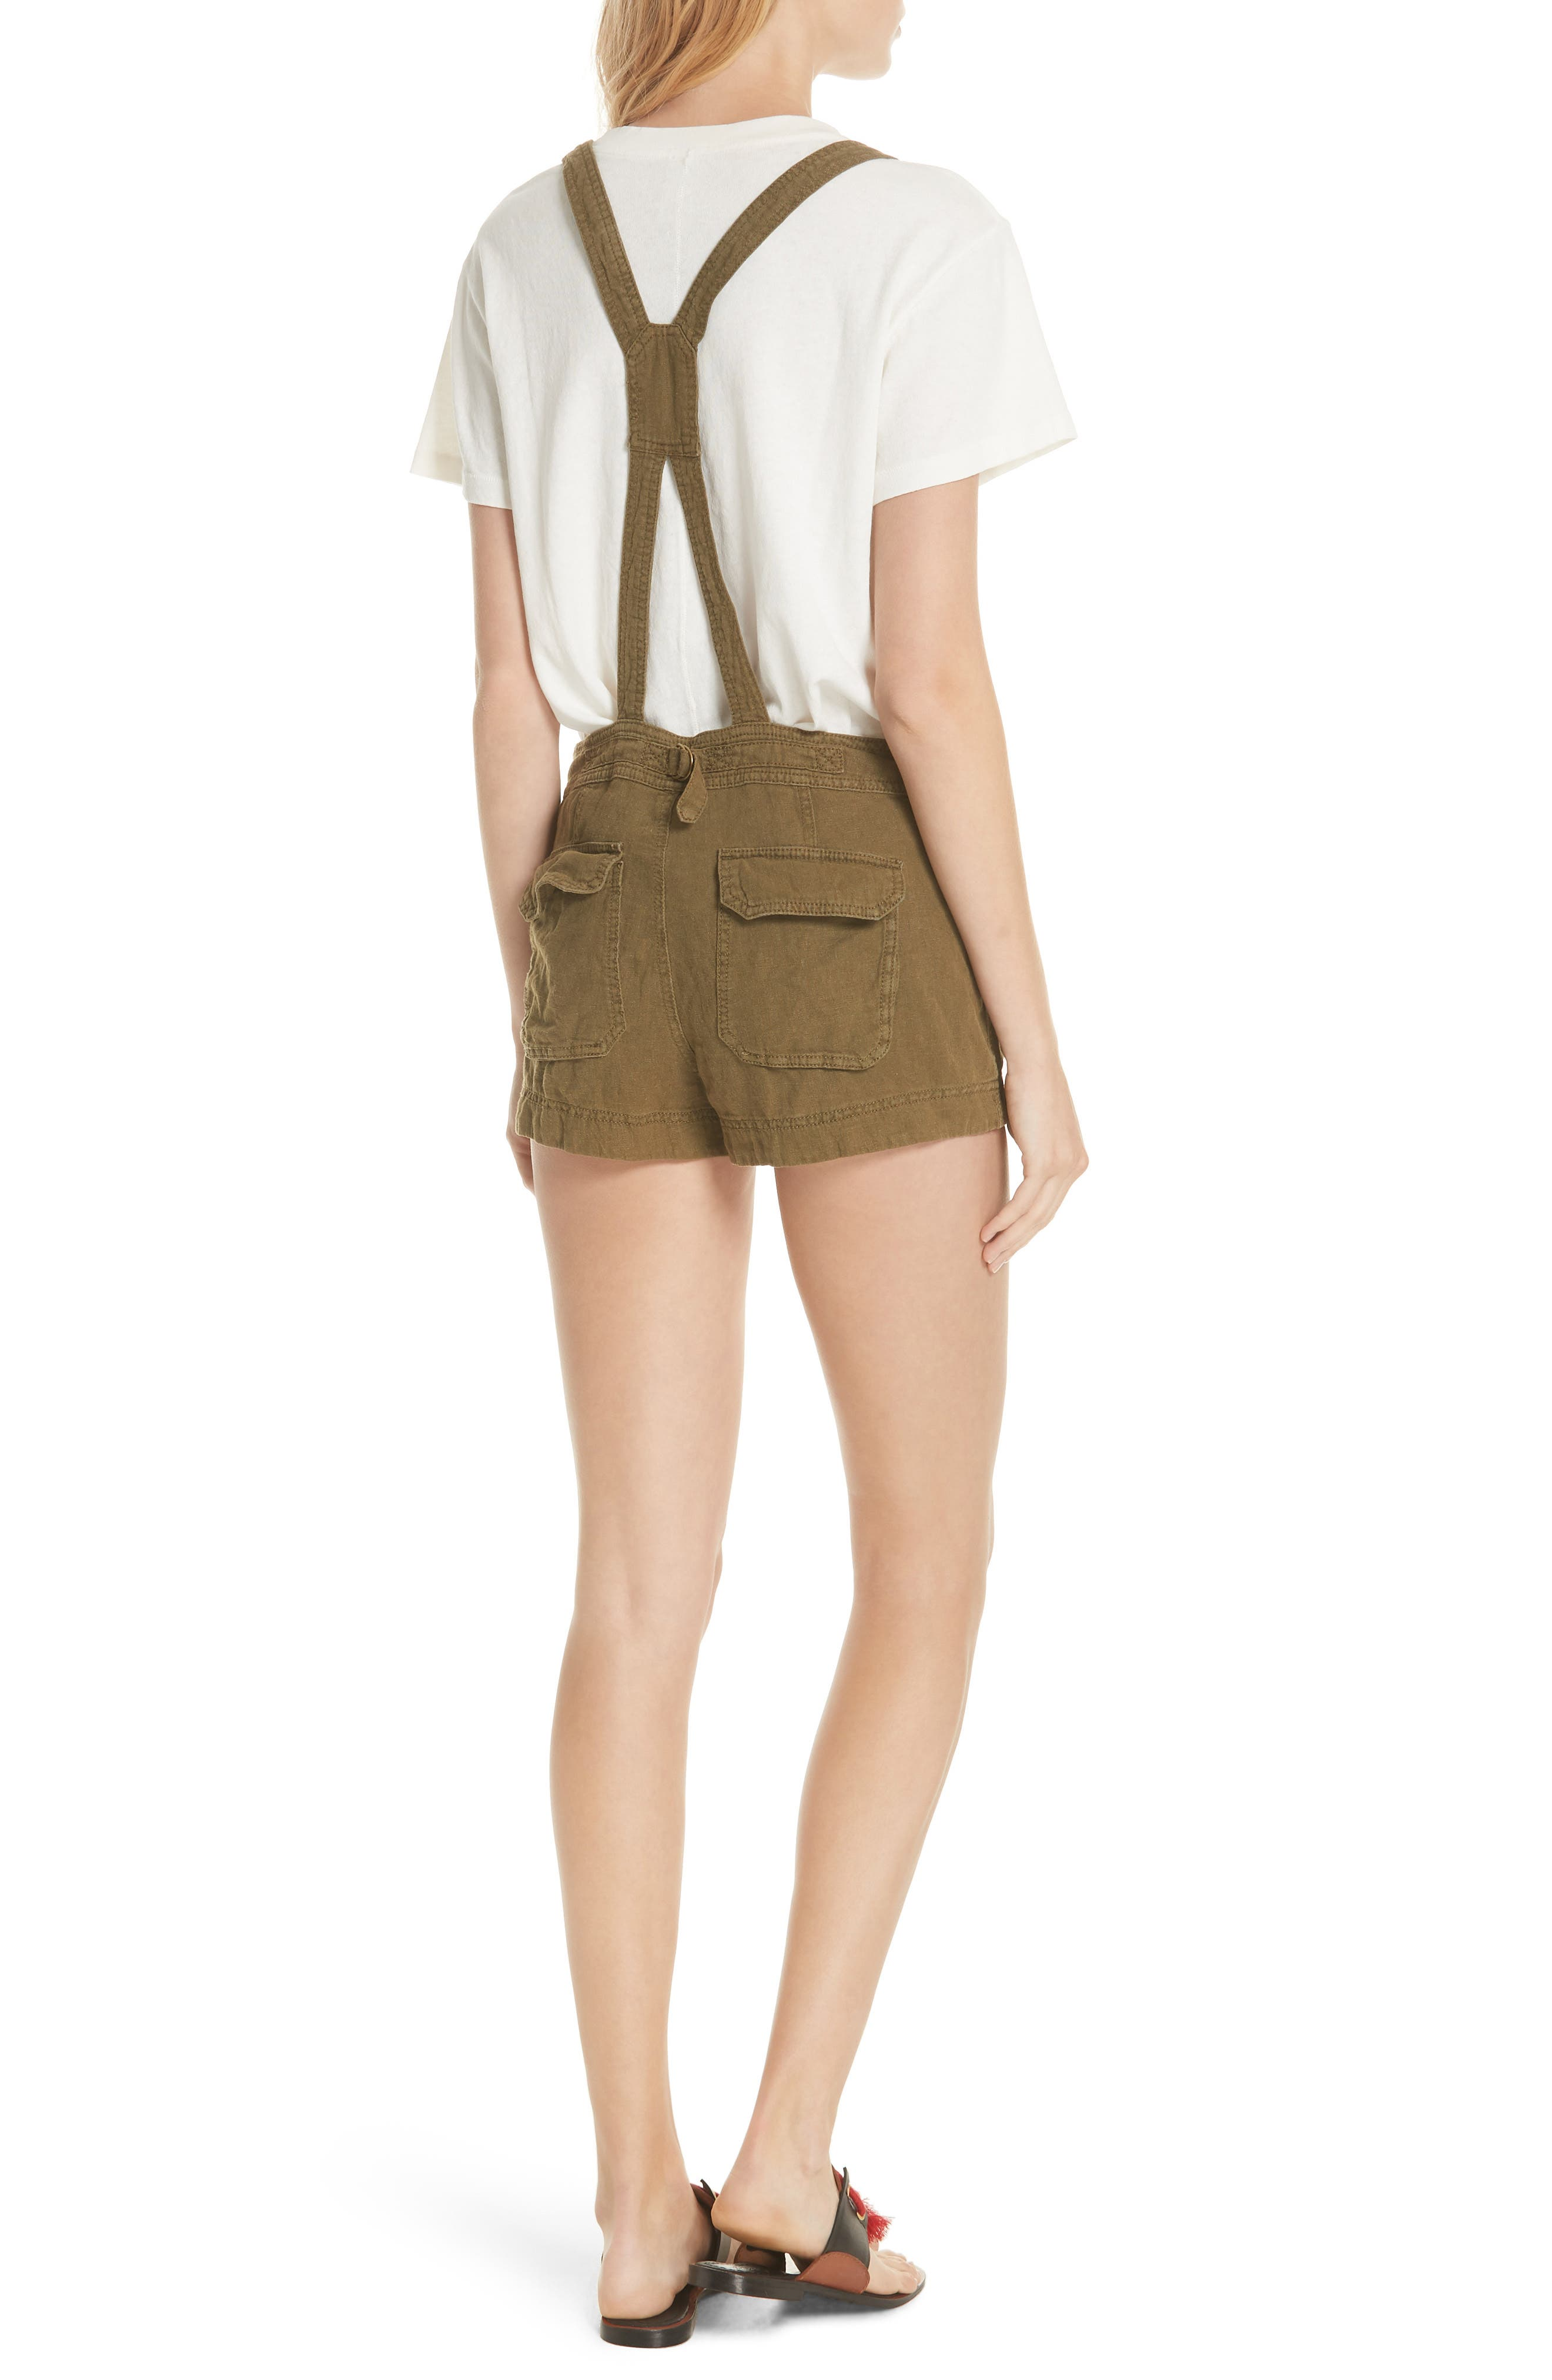 Expedition Short Overalls,                             Alternate thumbnail 2, color,                             Army